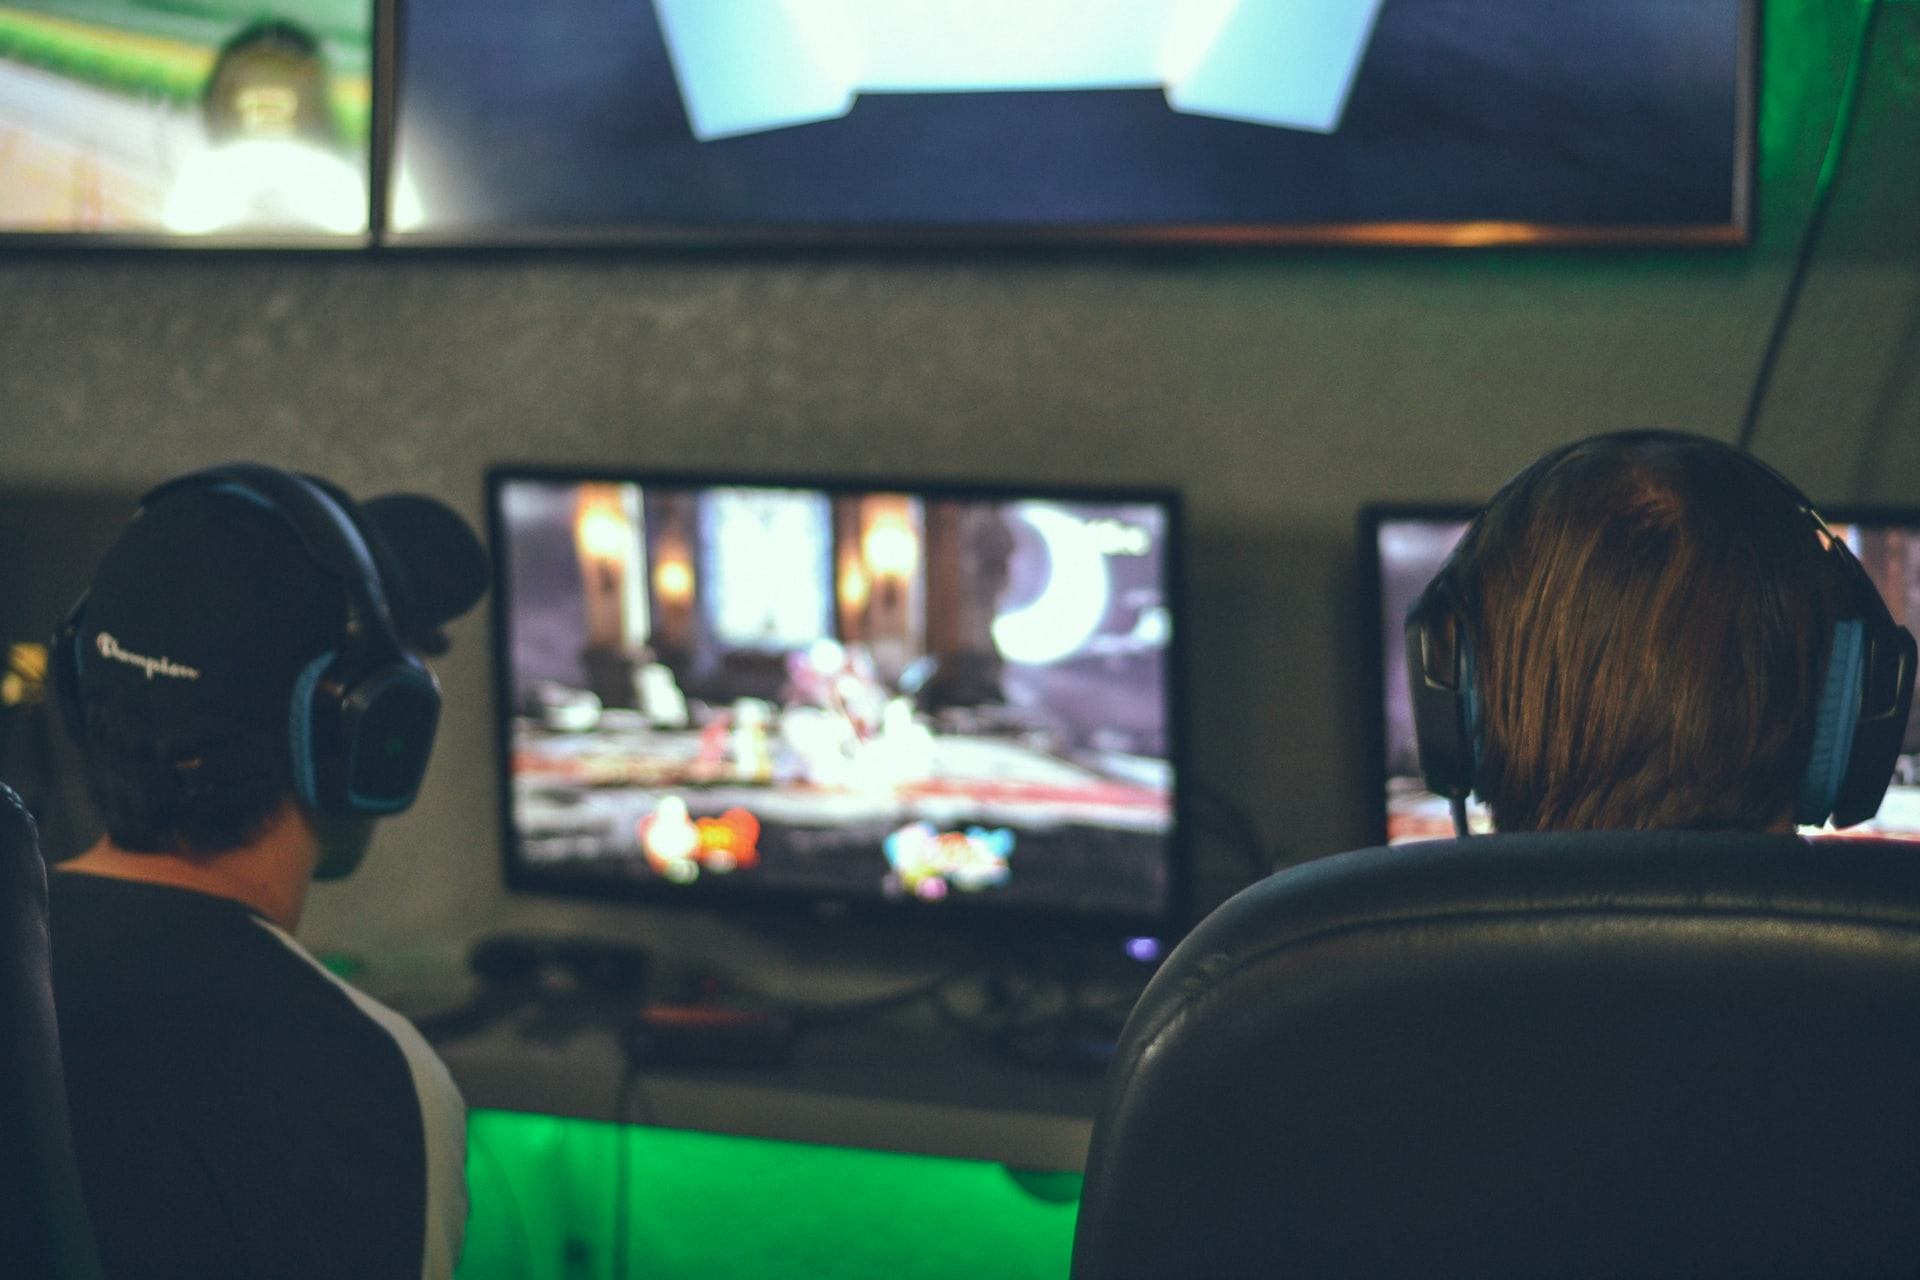 alex haney lfQyS TnqEg unsplash - What Age is Online Gaming Appropriate For?